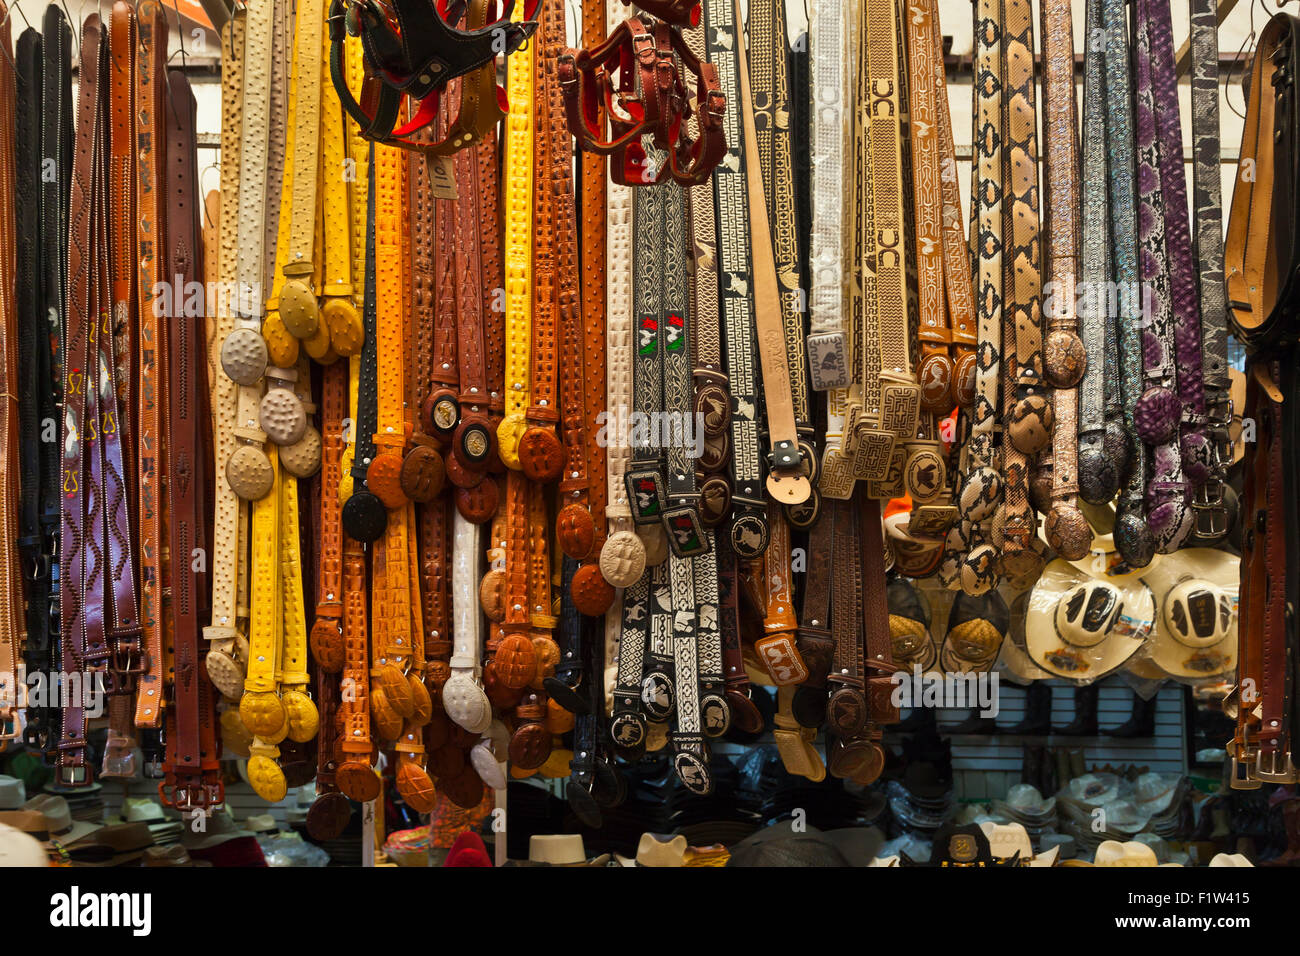 BELTS made from animal skins and for sale in the massive MERCADO DE ABASTOS - OAXACA, MEXICO - Stock Image